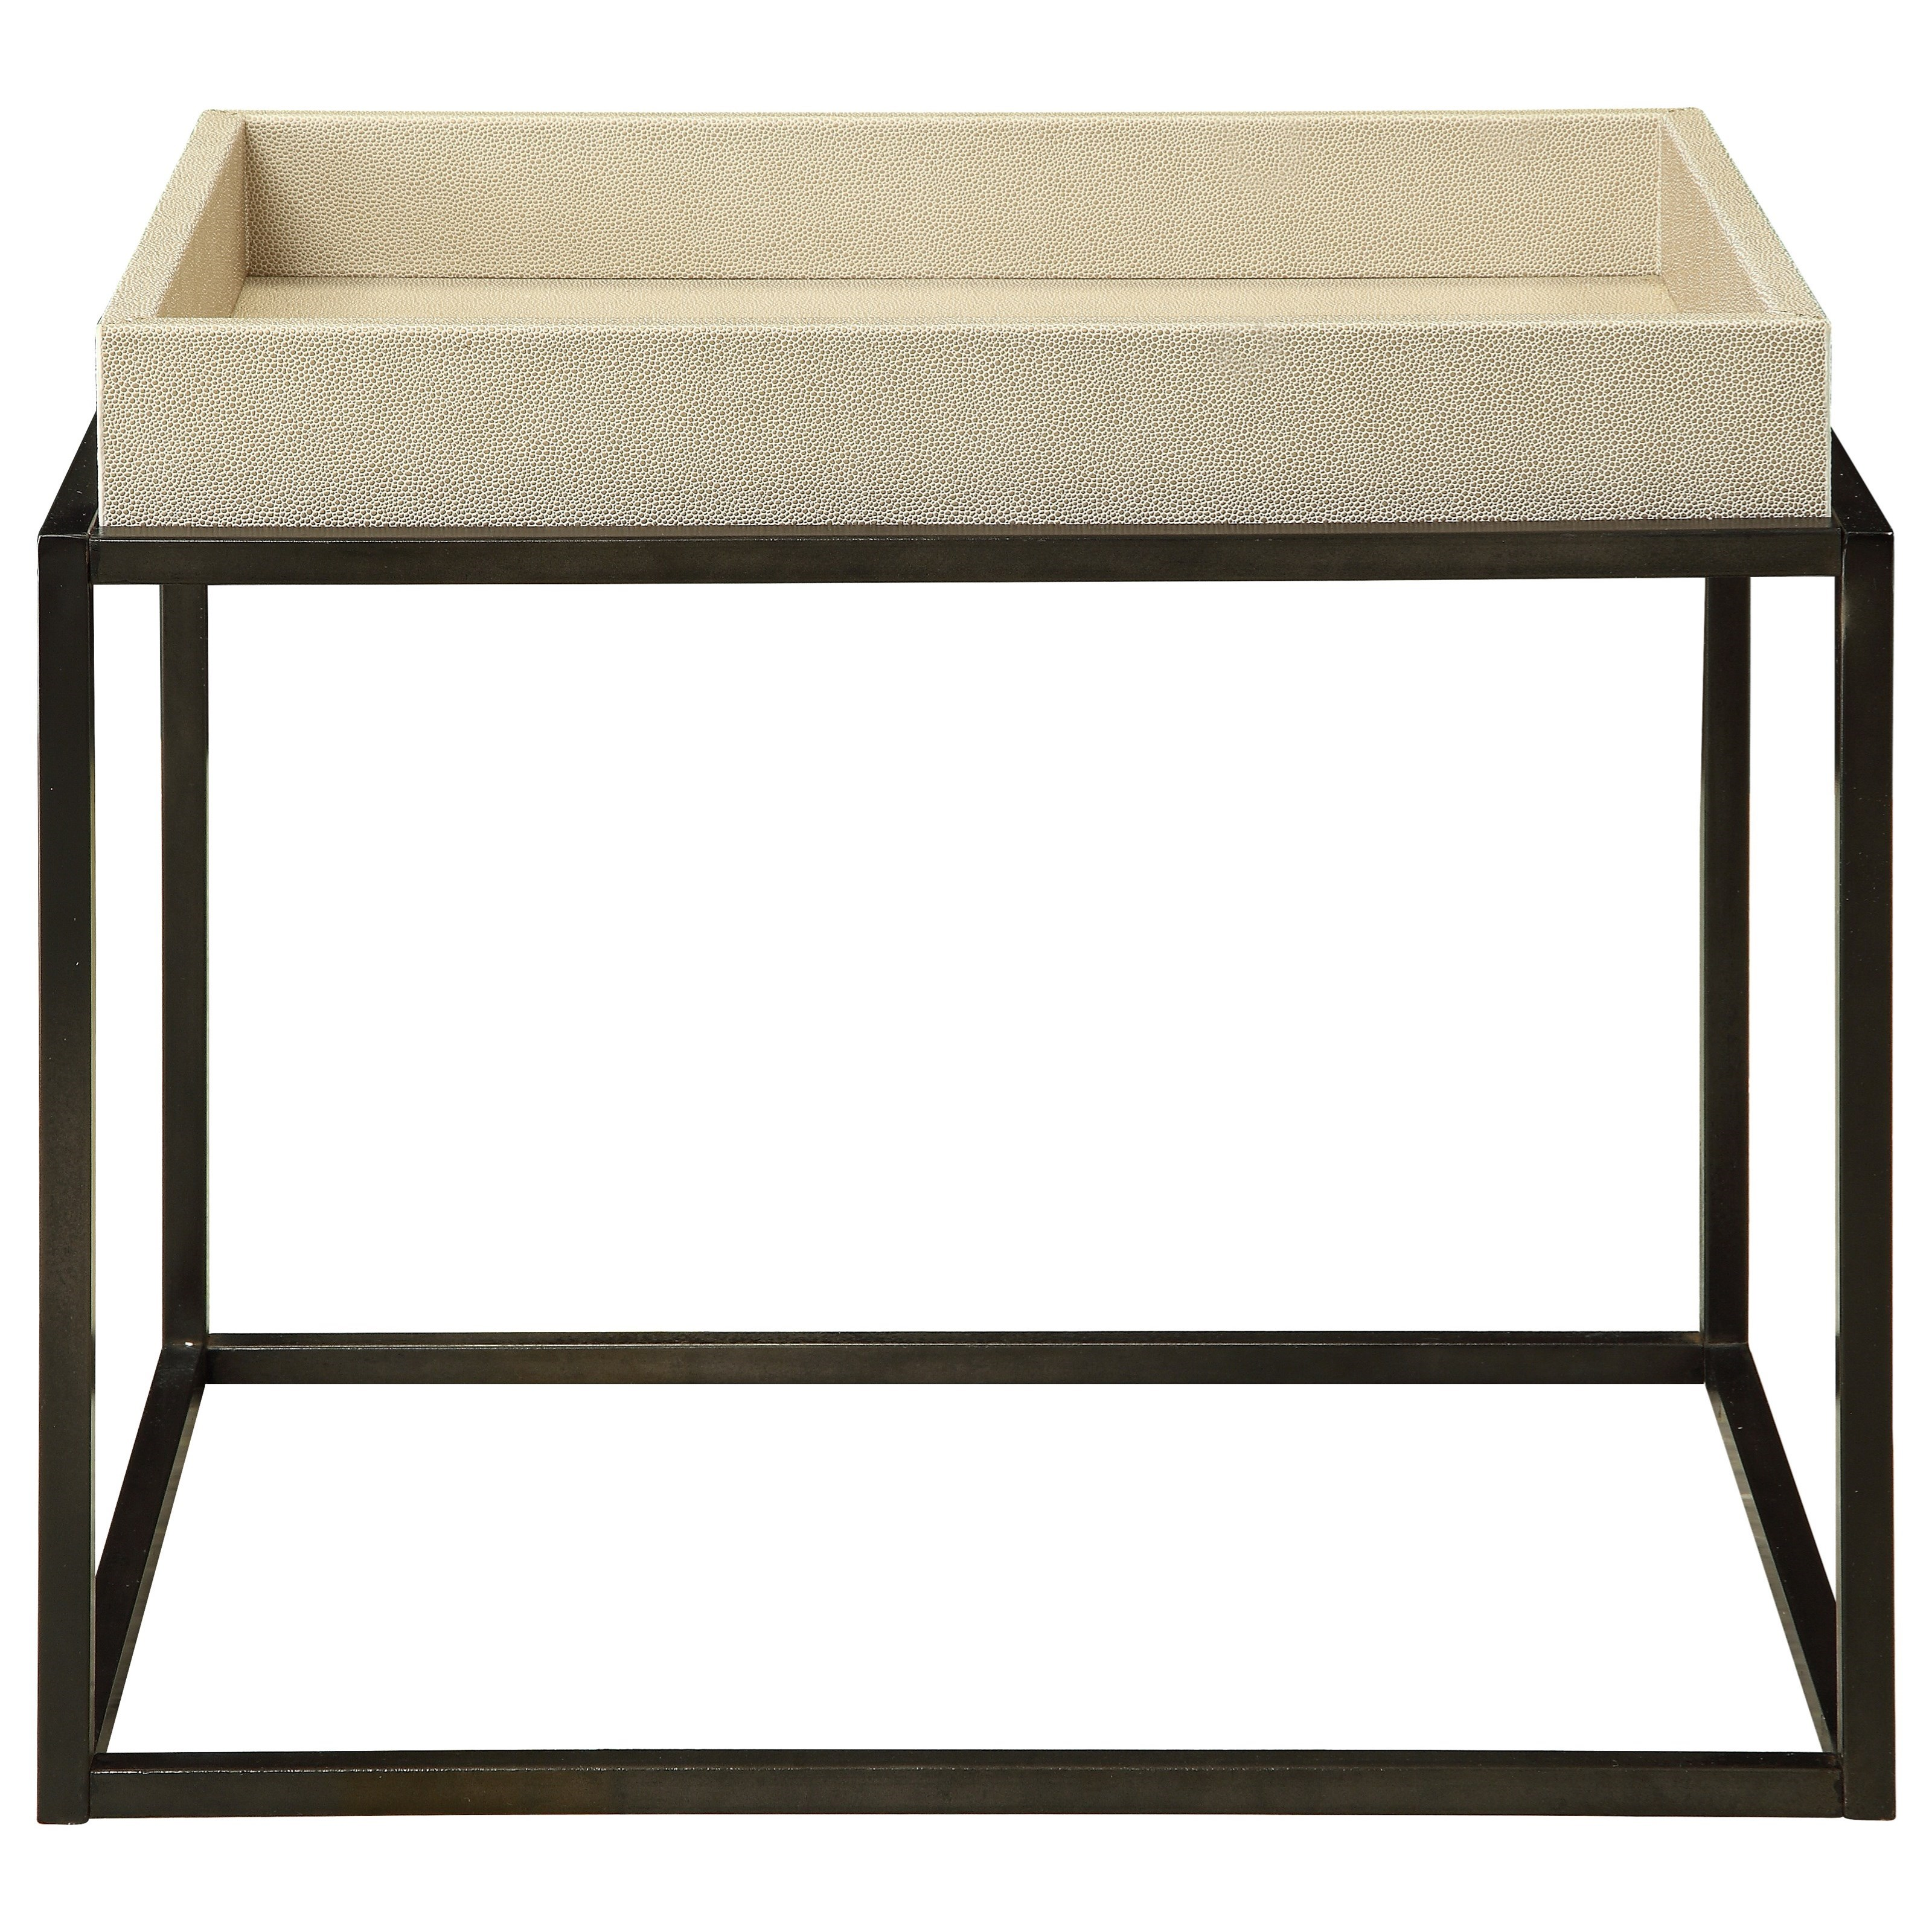 Tray Top End Table Table Designs